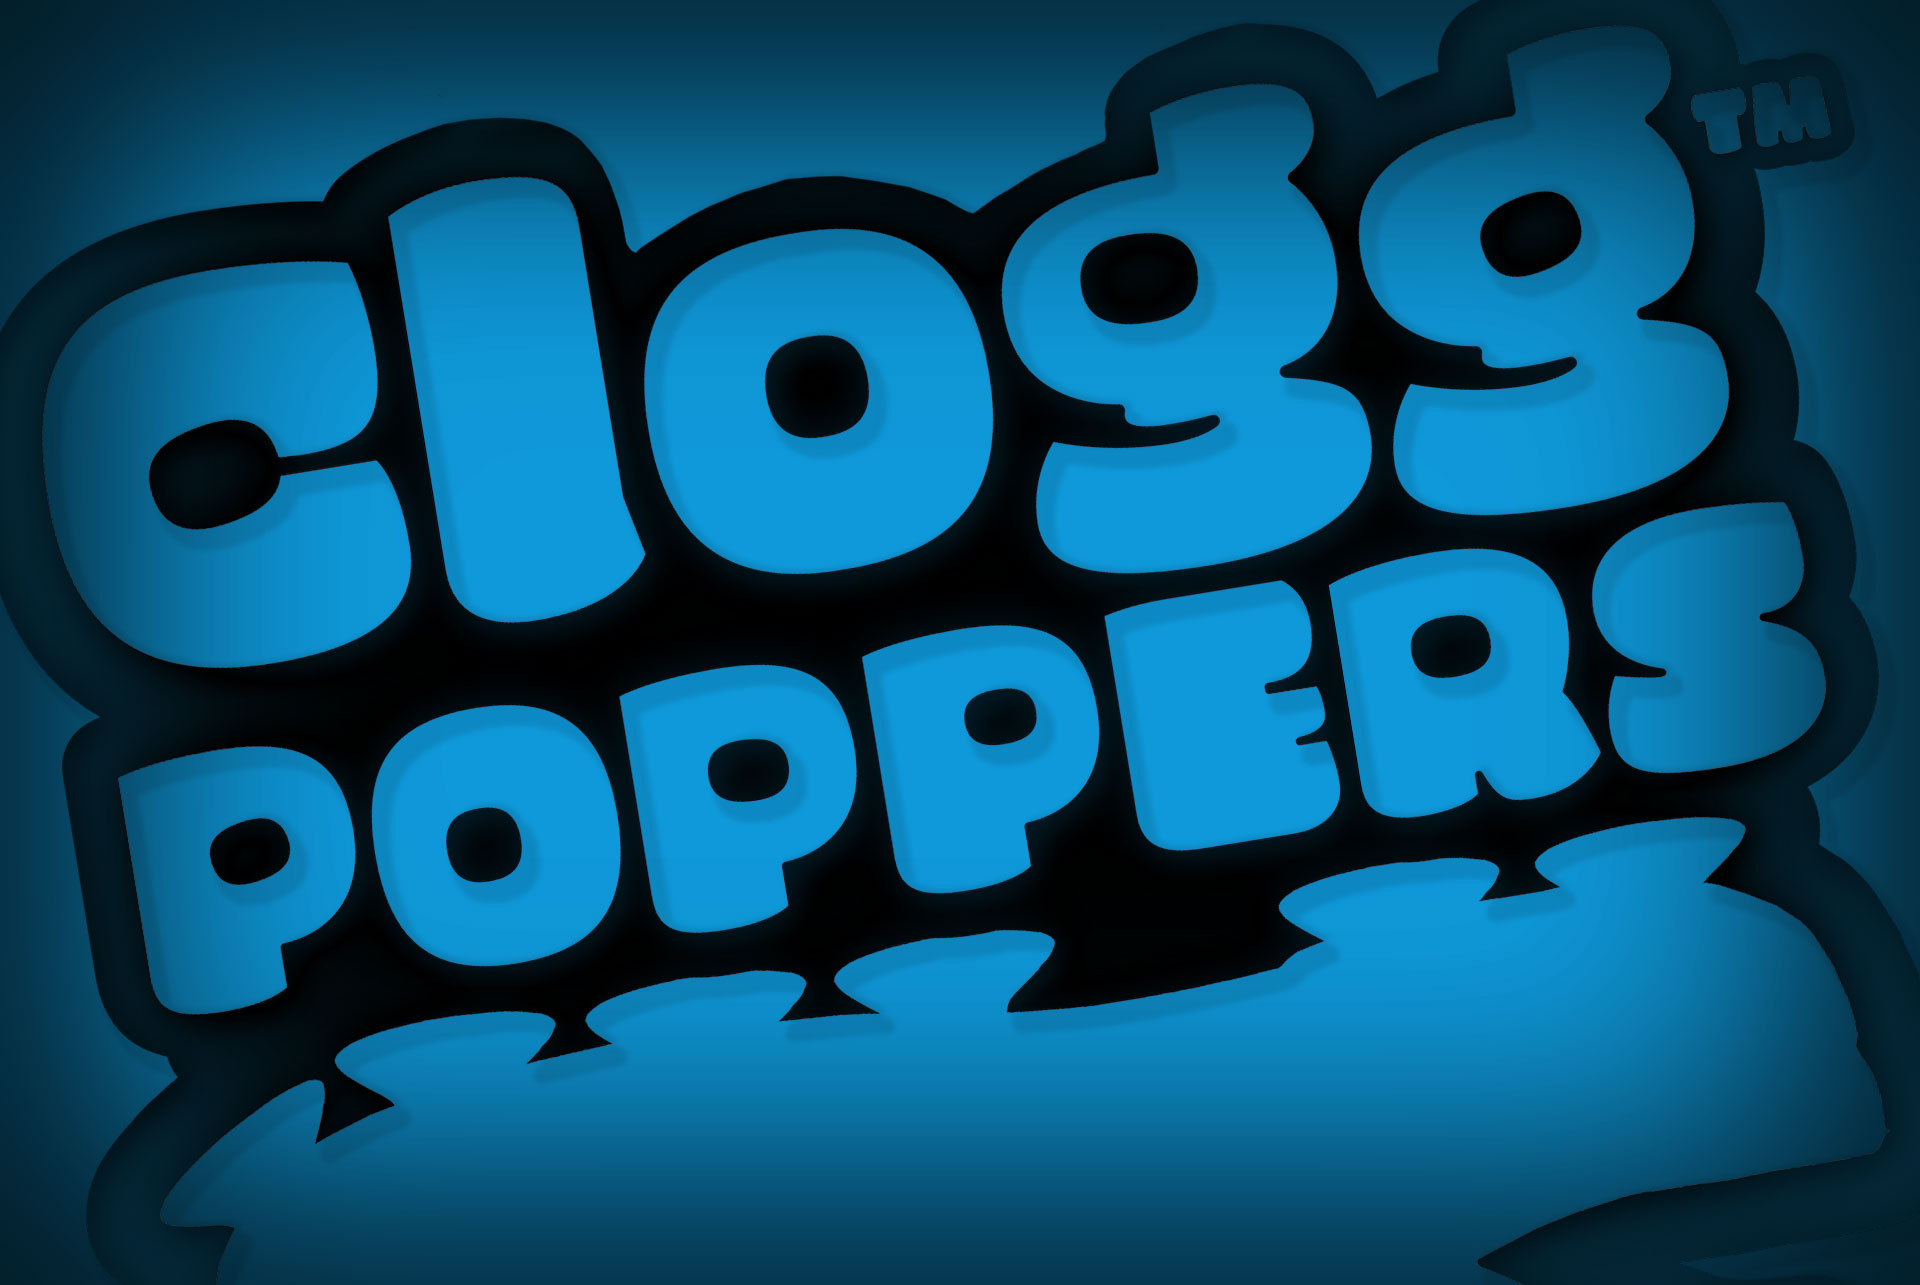 cloggpoppers_feature